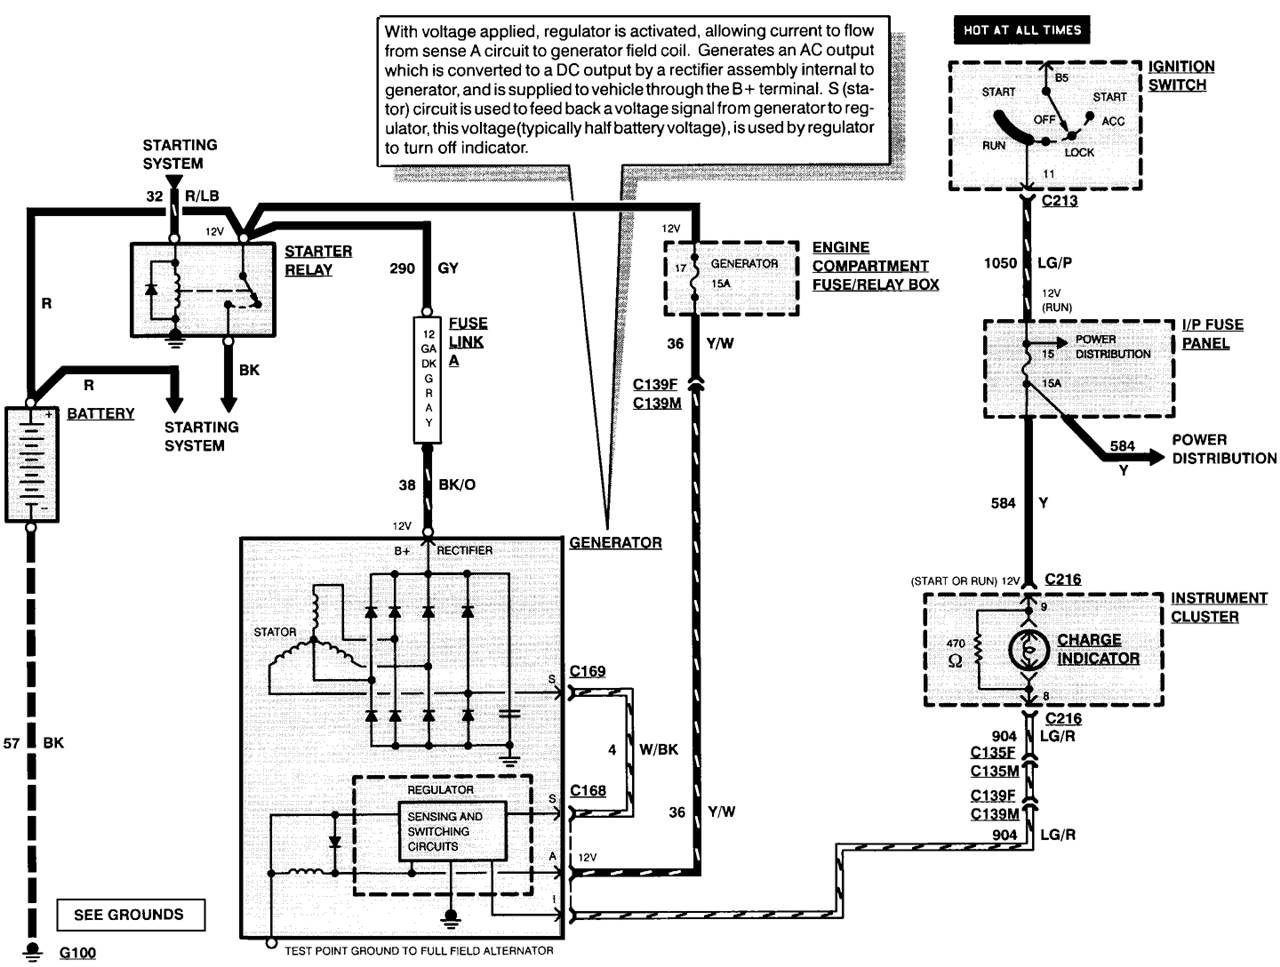 Ford alternator wiring diagram internal regulator?resized665%2C502 mopar wiring diagram powerflex 755 wiring diagrams \u2022 free wiring alternator wiring schematic at gsmx.co